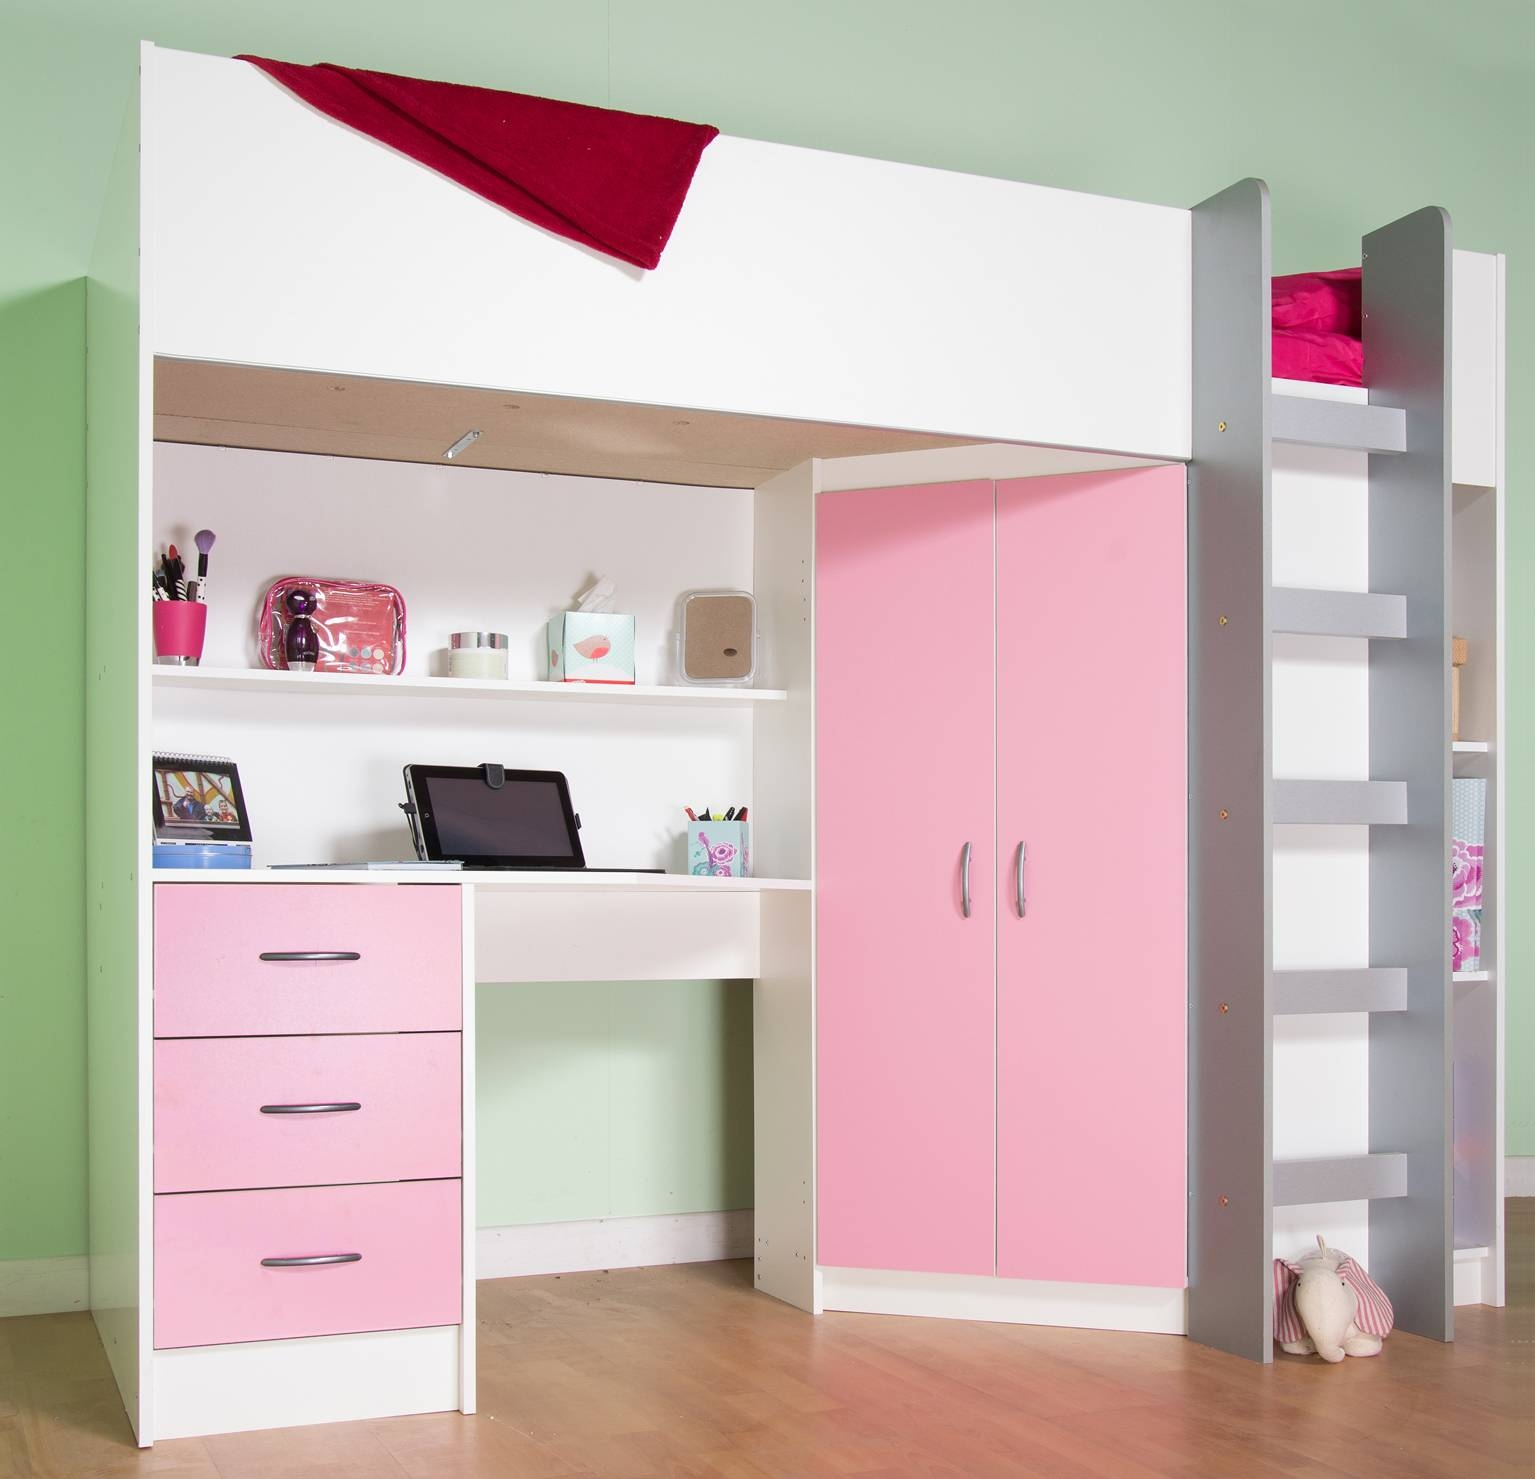 Cheap Cabin Beds With Desk | Kts-S pertaining to High Sleeper With Desk and Sofa (Image 5 of 30)